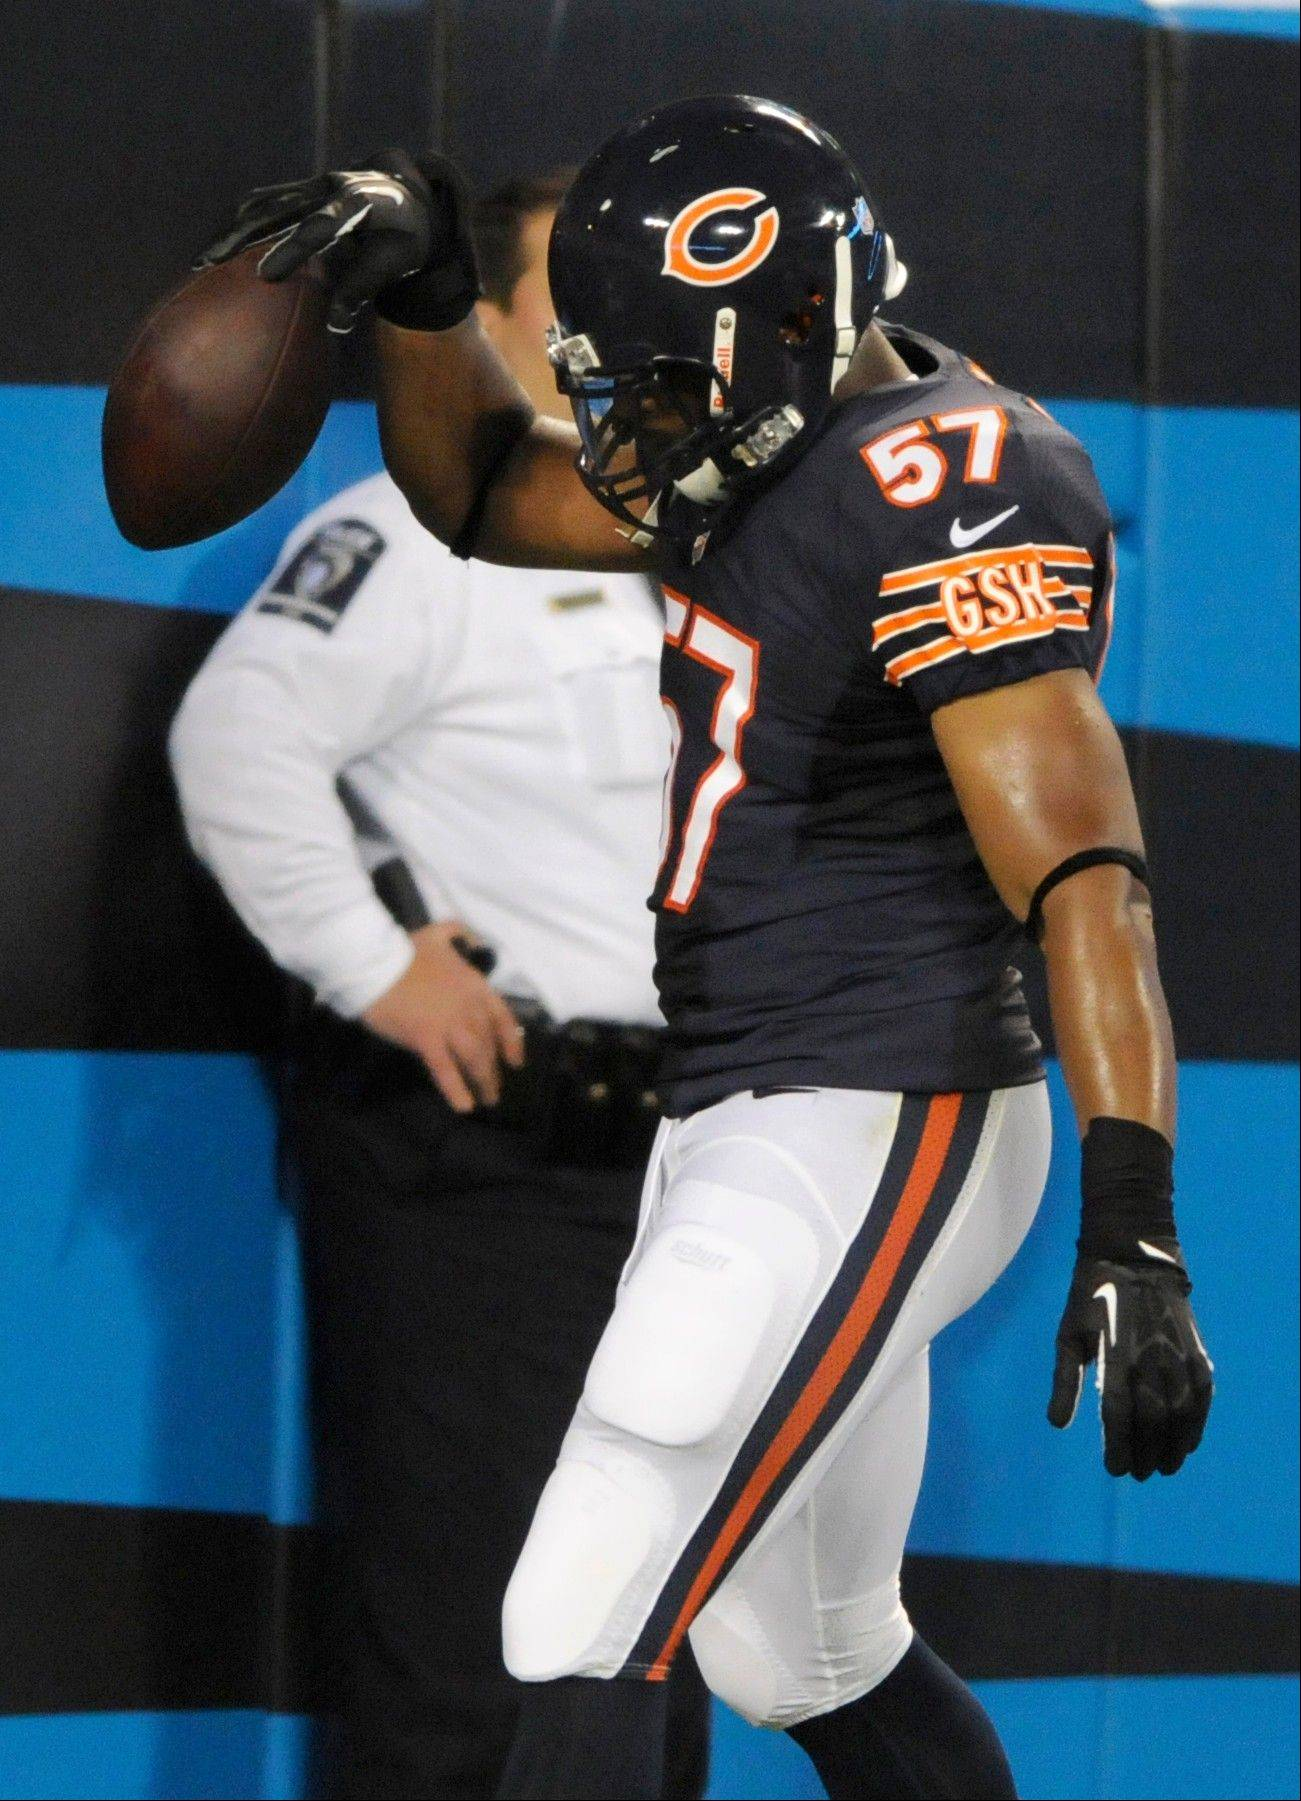 Chicago Bears' Jon Bostic (57) spikes the ball in the end zone after returning an interception for a touchdown against the Carolina Panthers during the first half of a preseason NFL football game in Charlotte, N.C., Friday, Aug. 9, 2013. (AP Photo/Mike McCarn)